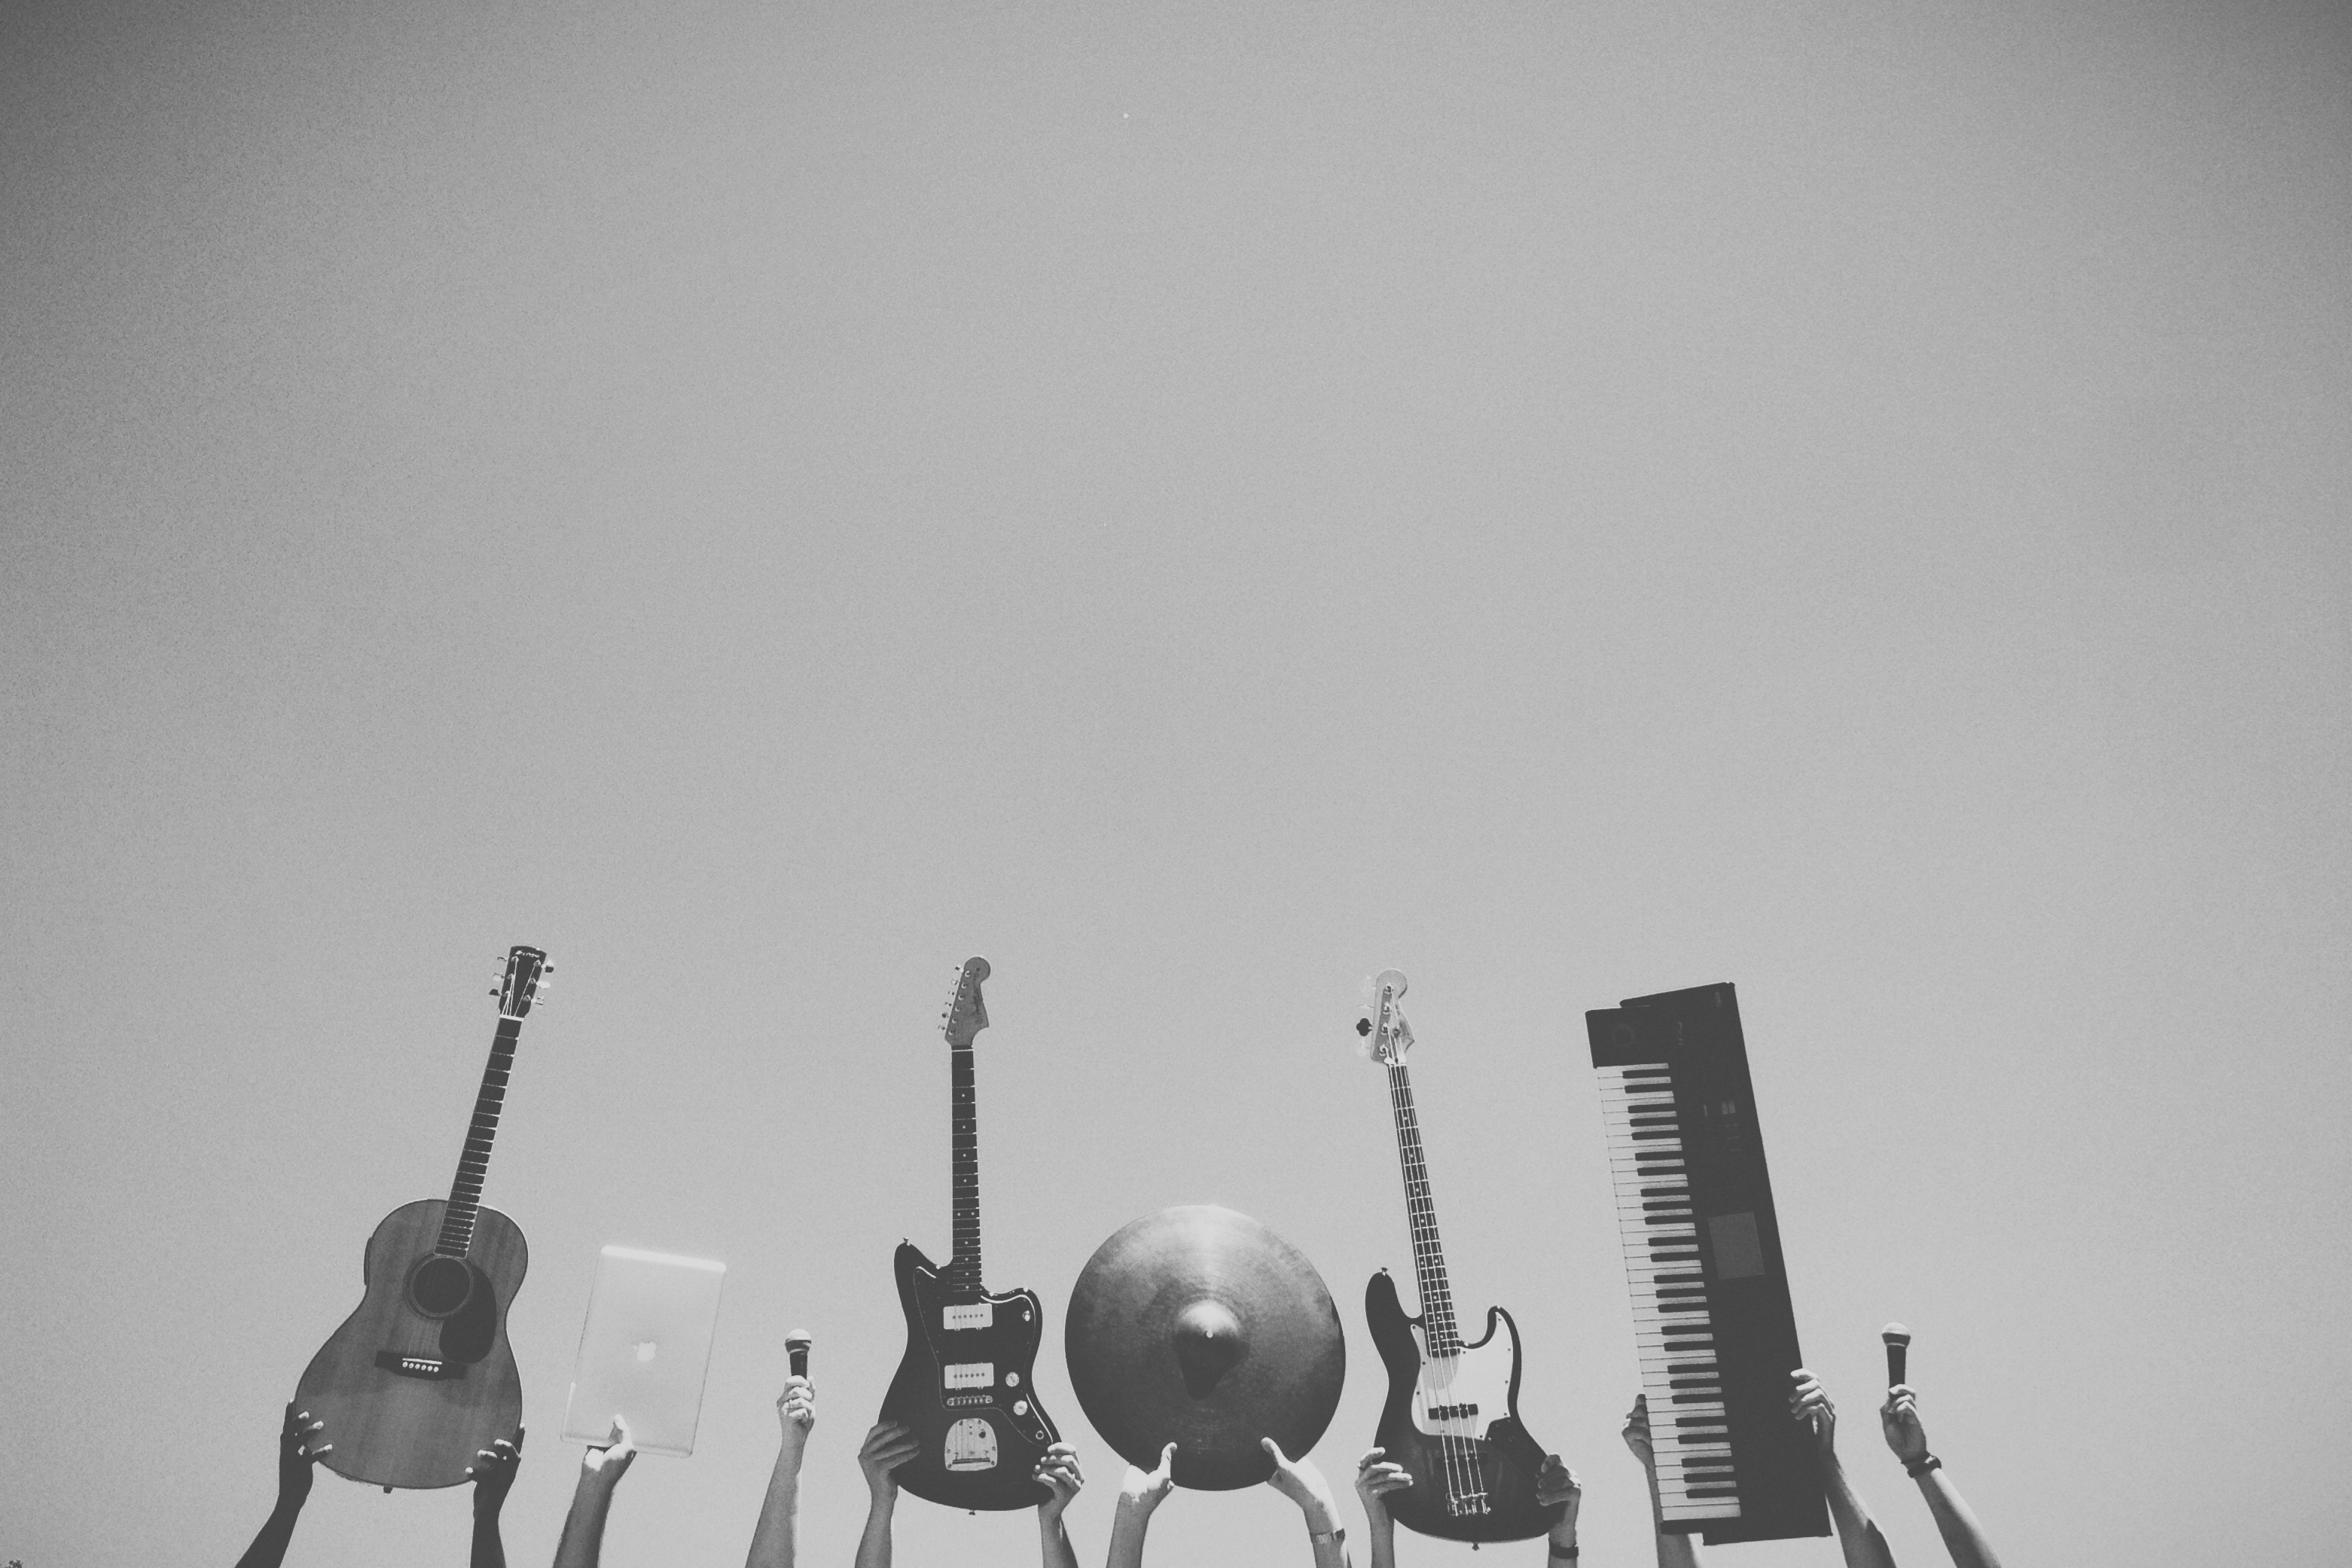 Music rock guitars musical instruments | © Unknown/Pexels